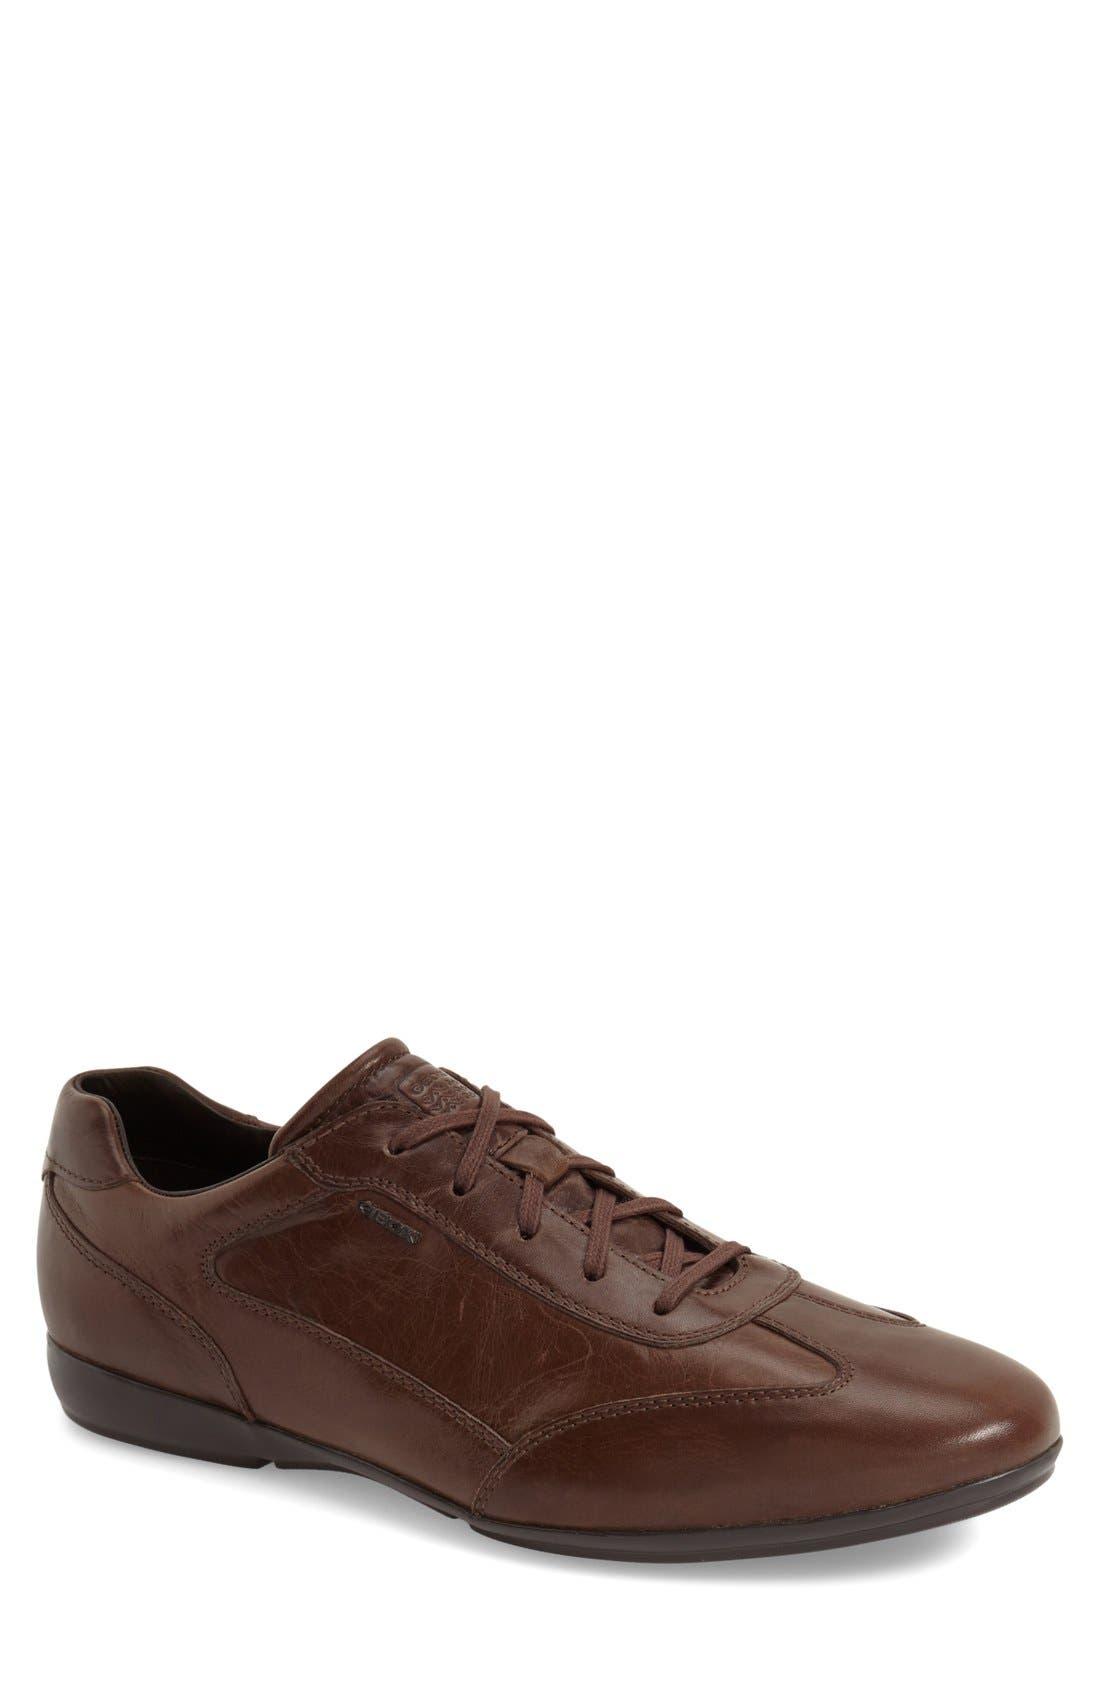 Wing Tip Oxford,                         Main,                         color, 200